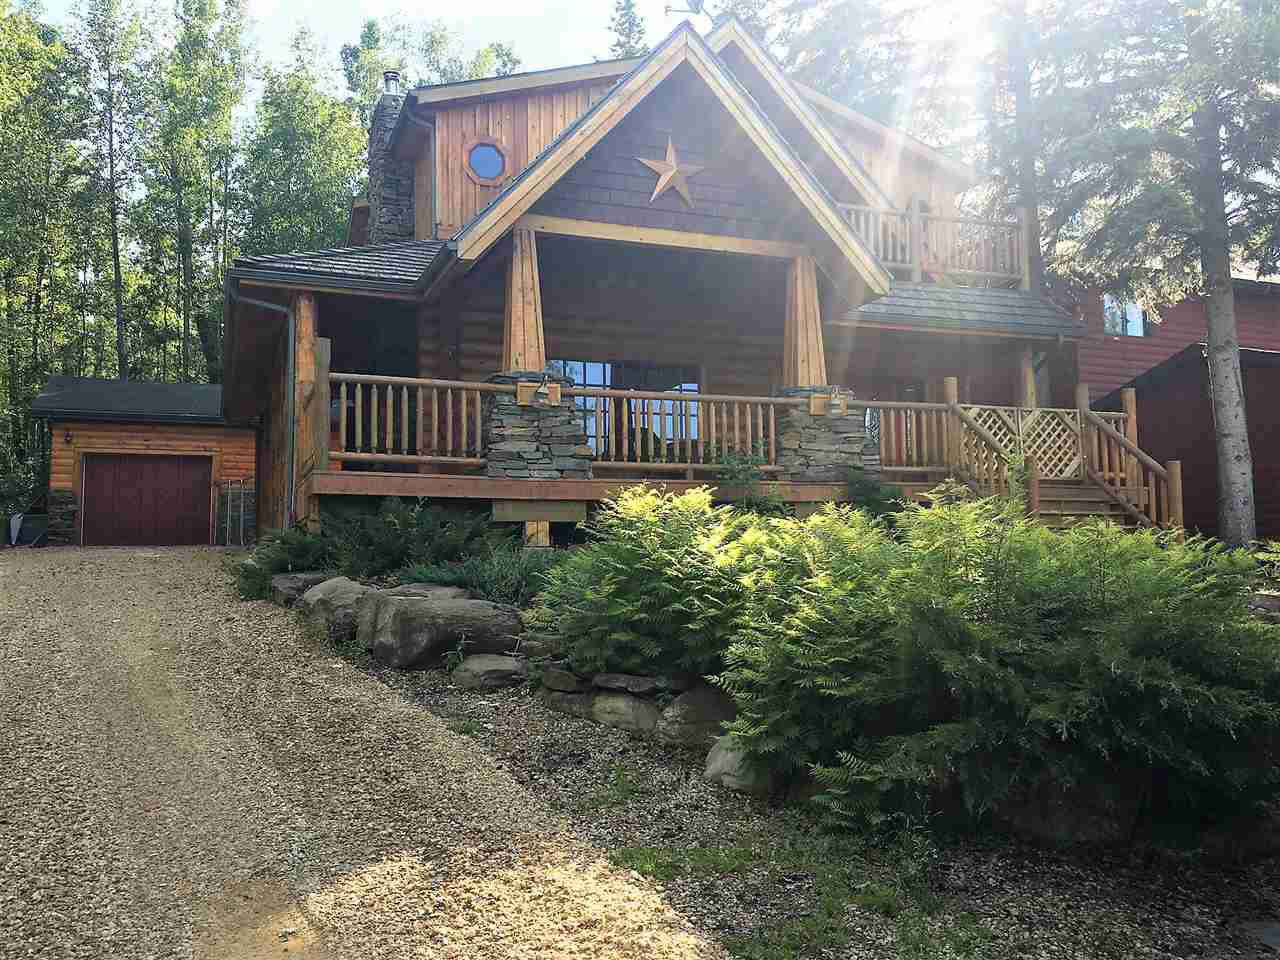 Main Photo: 191 Crystal Springs: Rural Wetaskiwin County House for sale : MLS®# E4104508